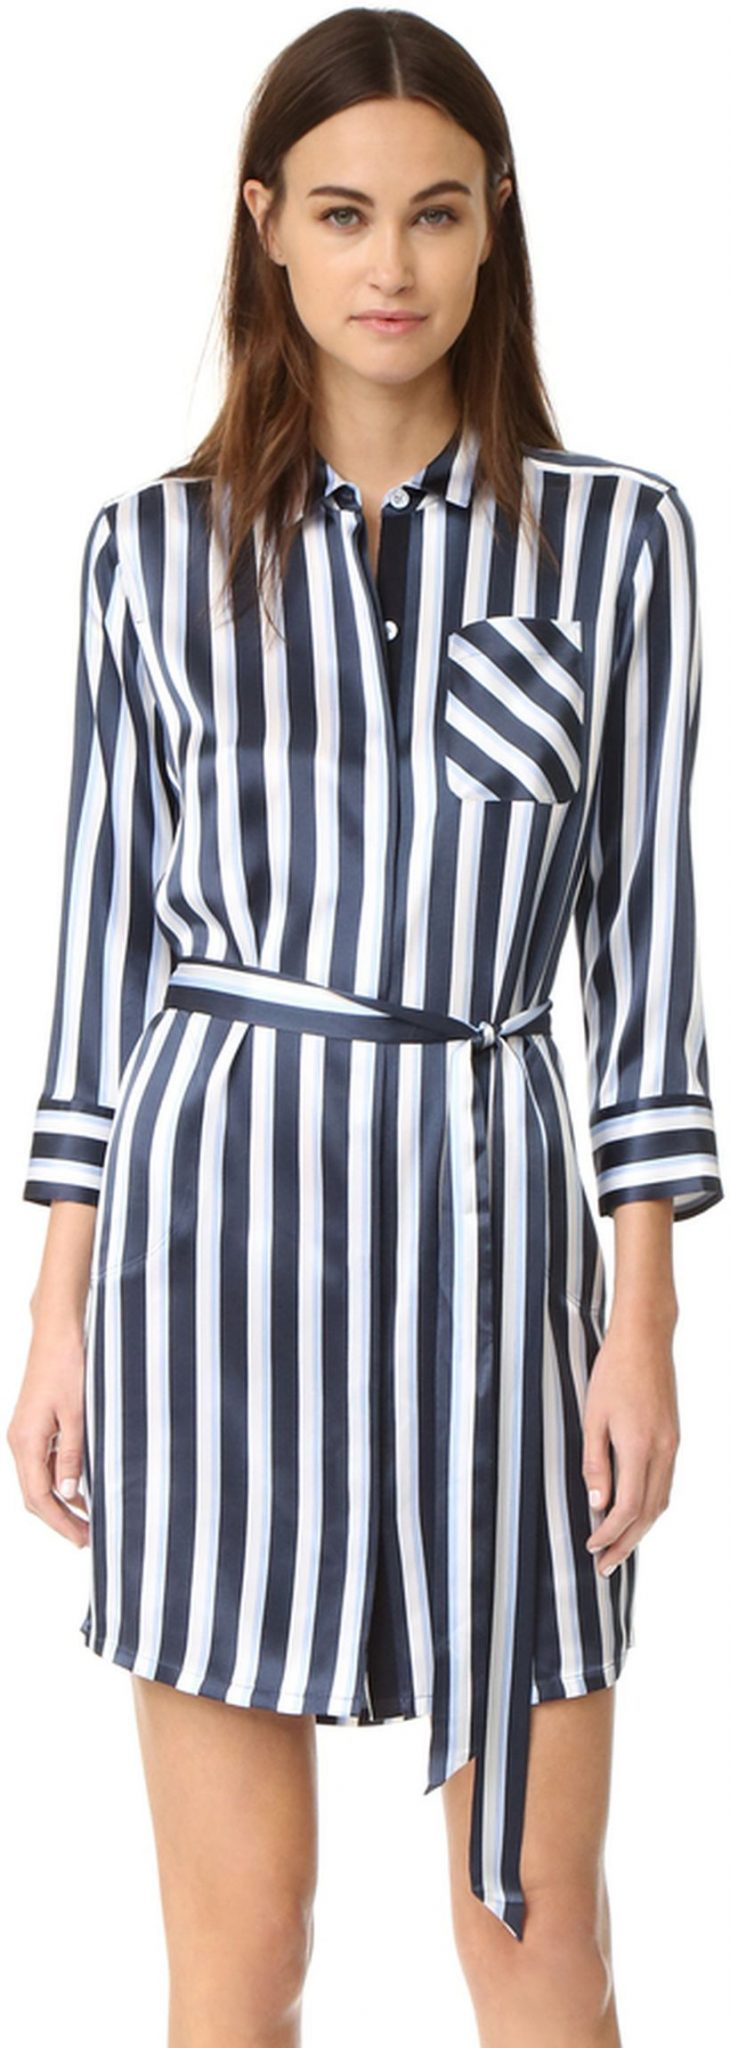 Marvelous striped shirtdresses outfits ideas 24